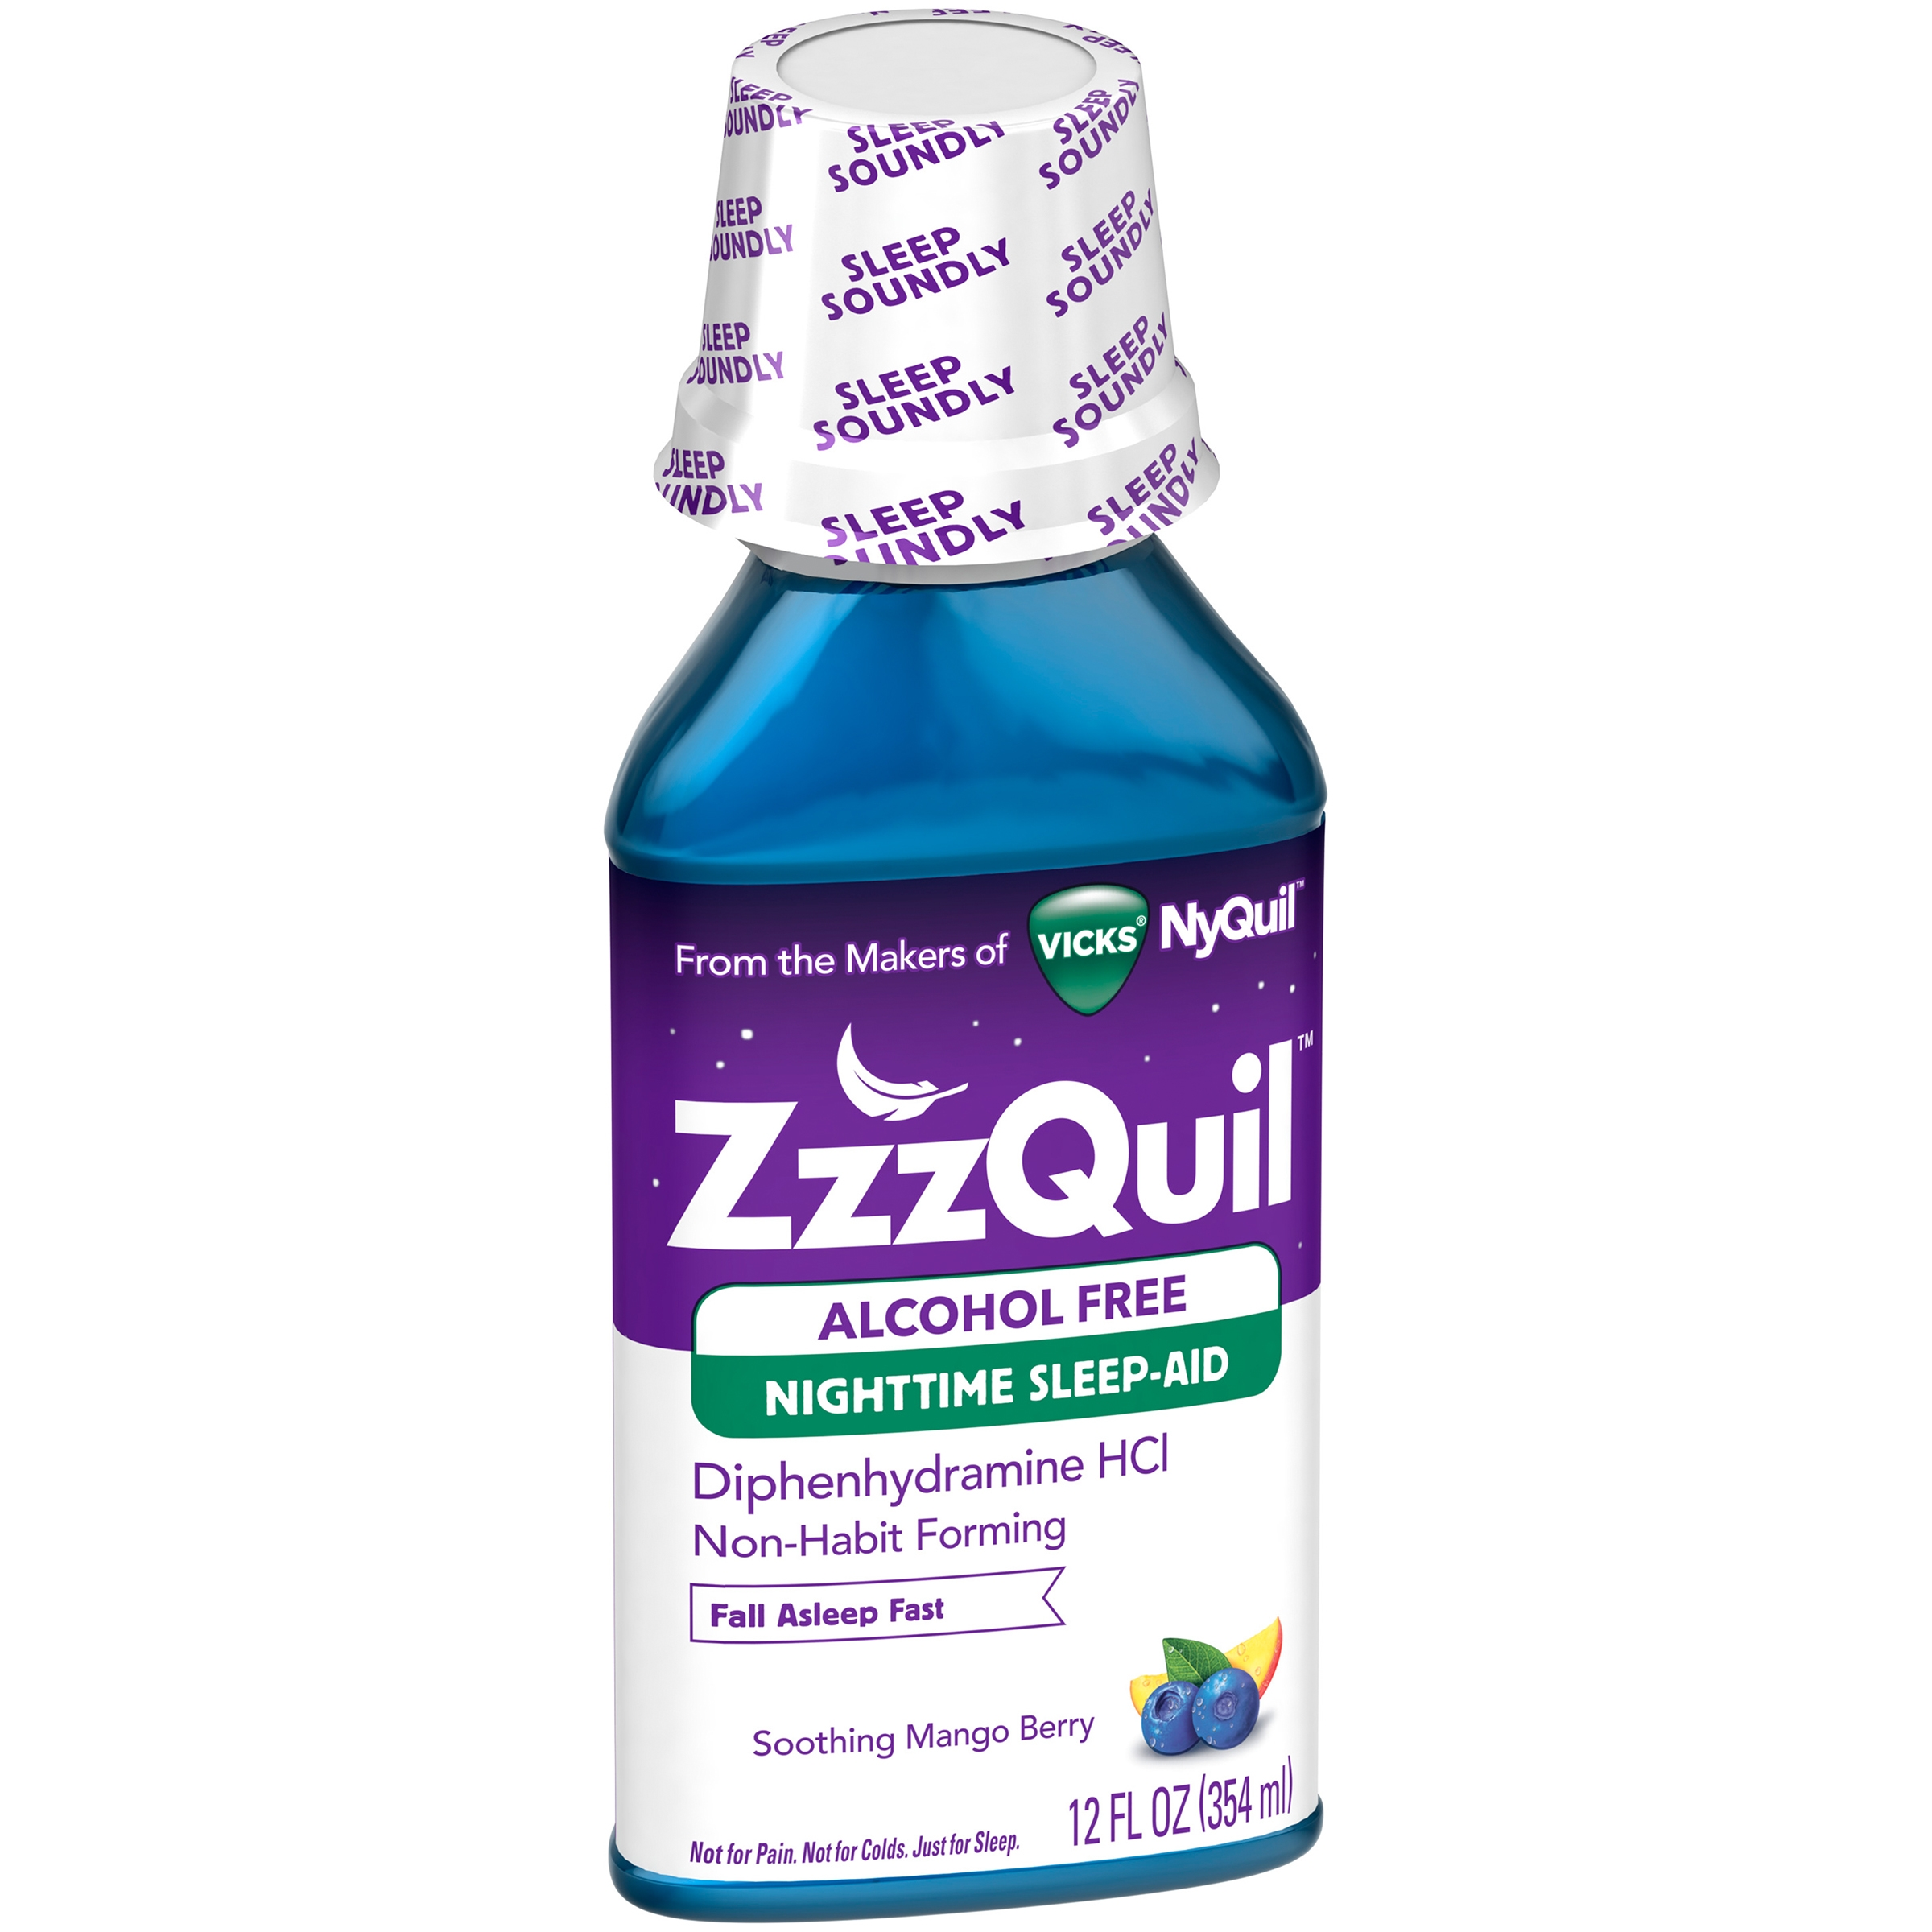 ZzzQuil Nighttime Sleep-Aid Alcohol Free Soothing Mango Berry Liquid, 12 fl oz